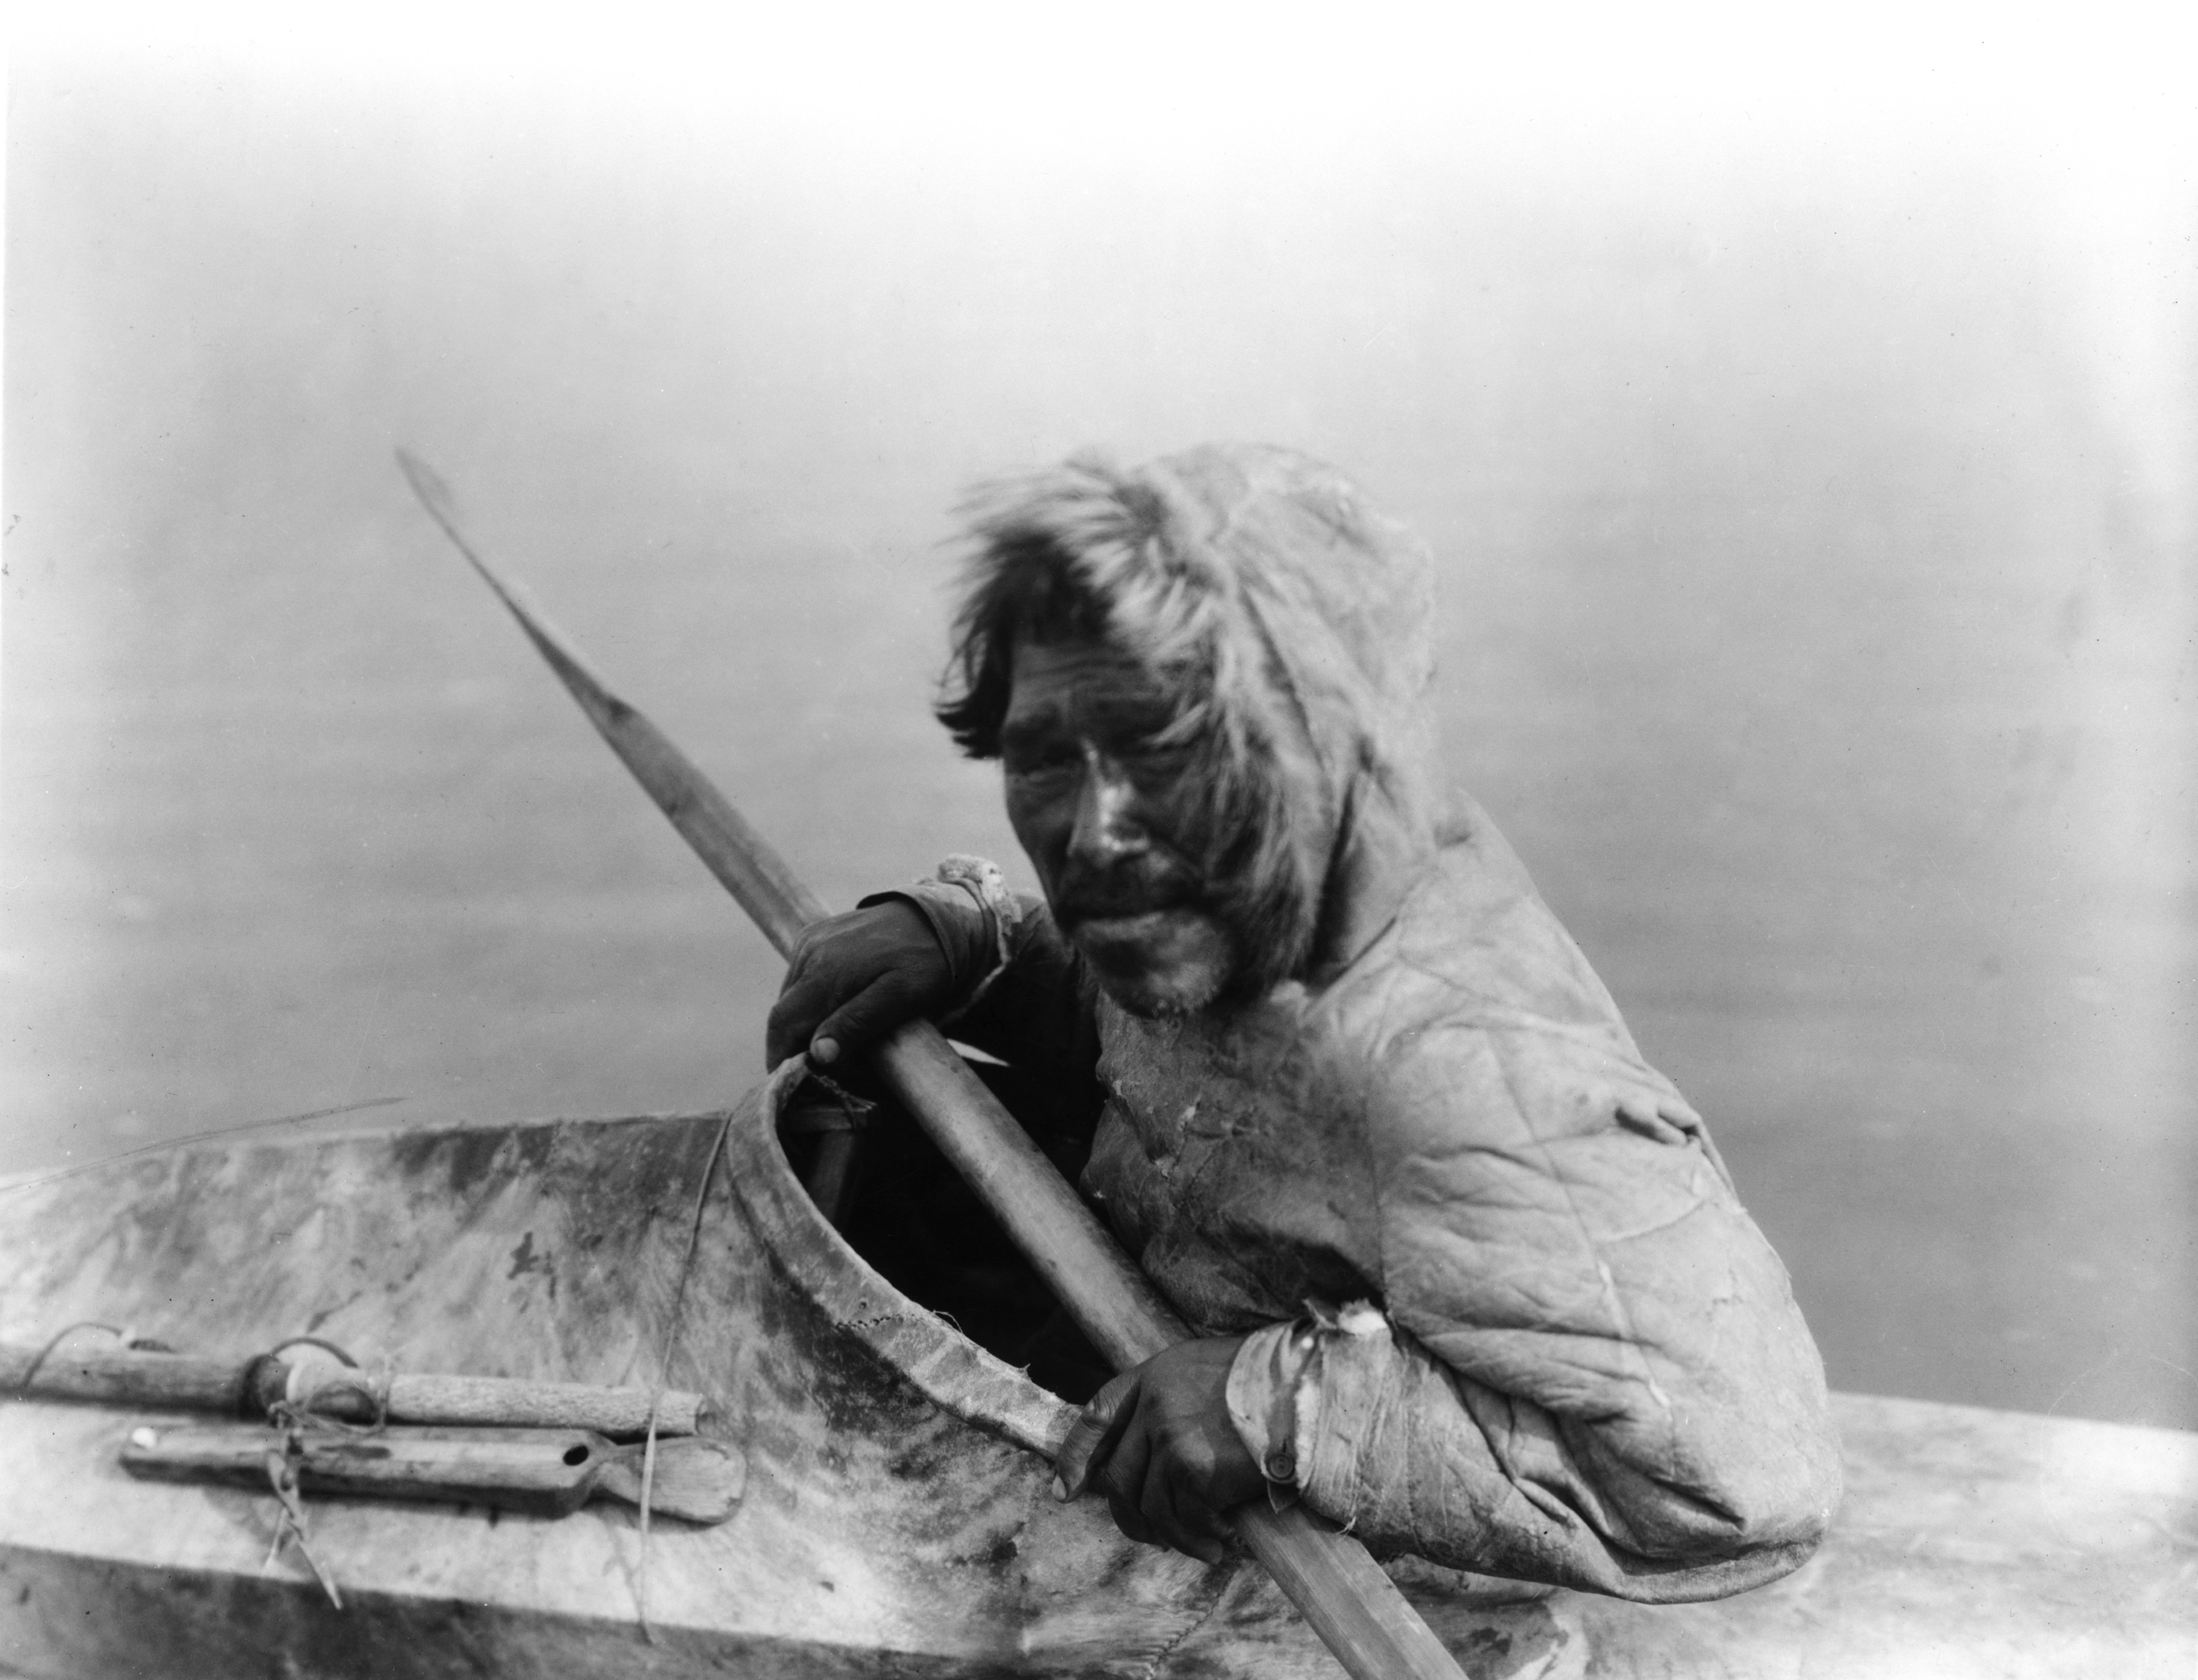 Inuit man by Curtis - Noatak AK.jpg